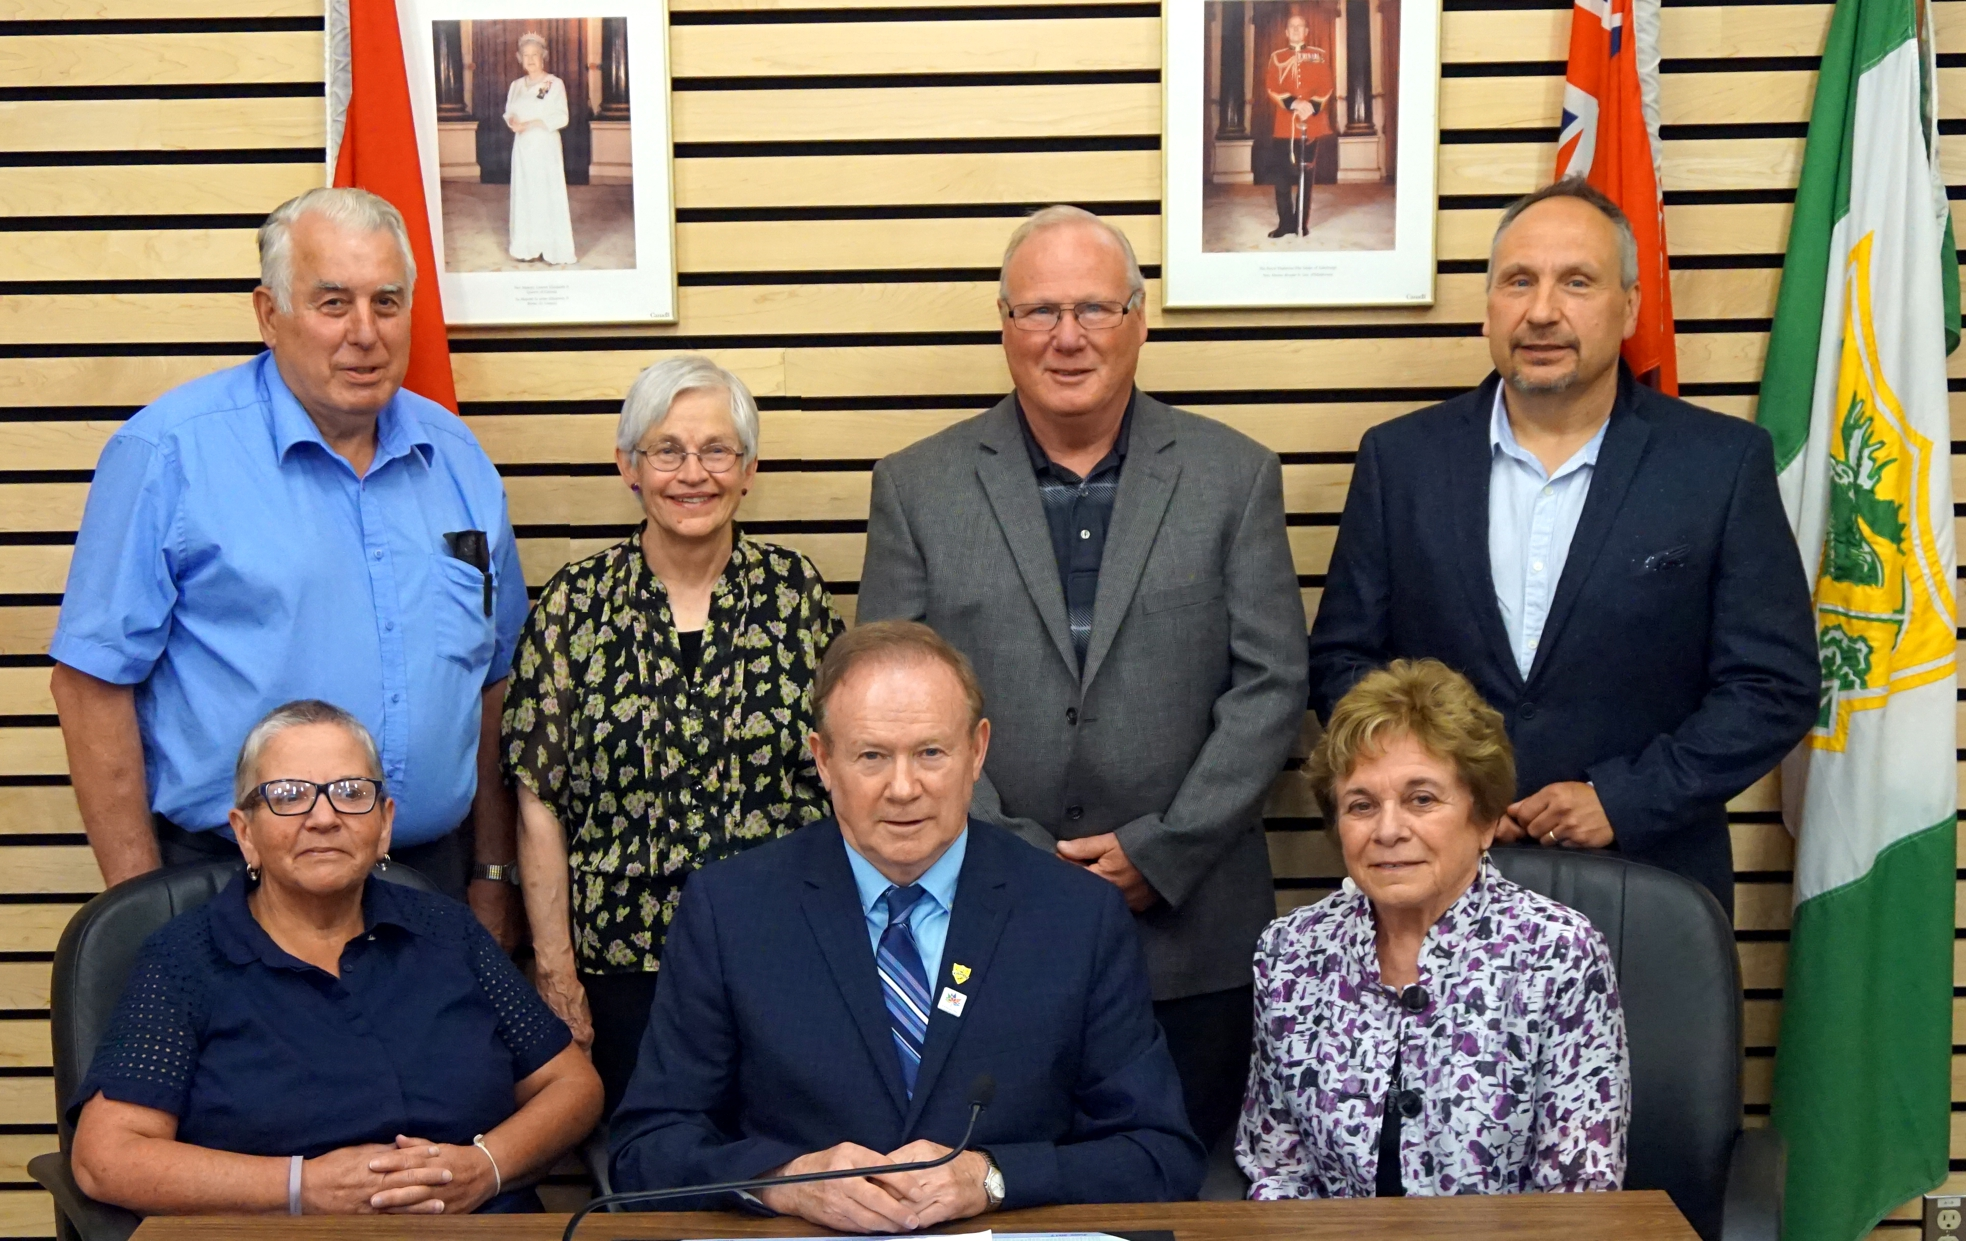 Town of Atikokan 38th Council picture